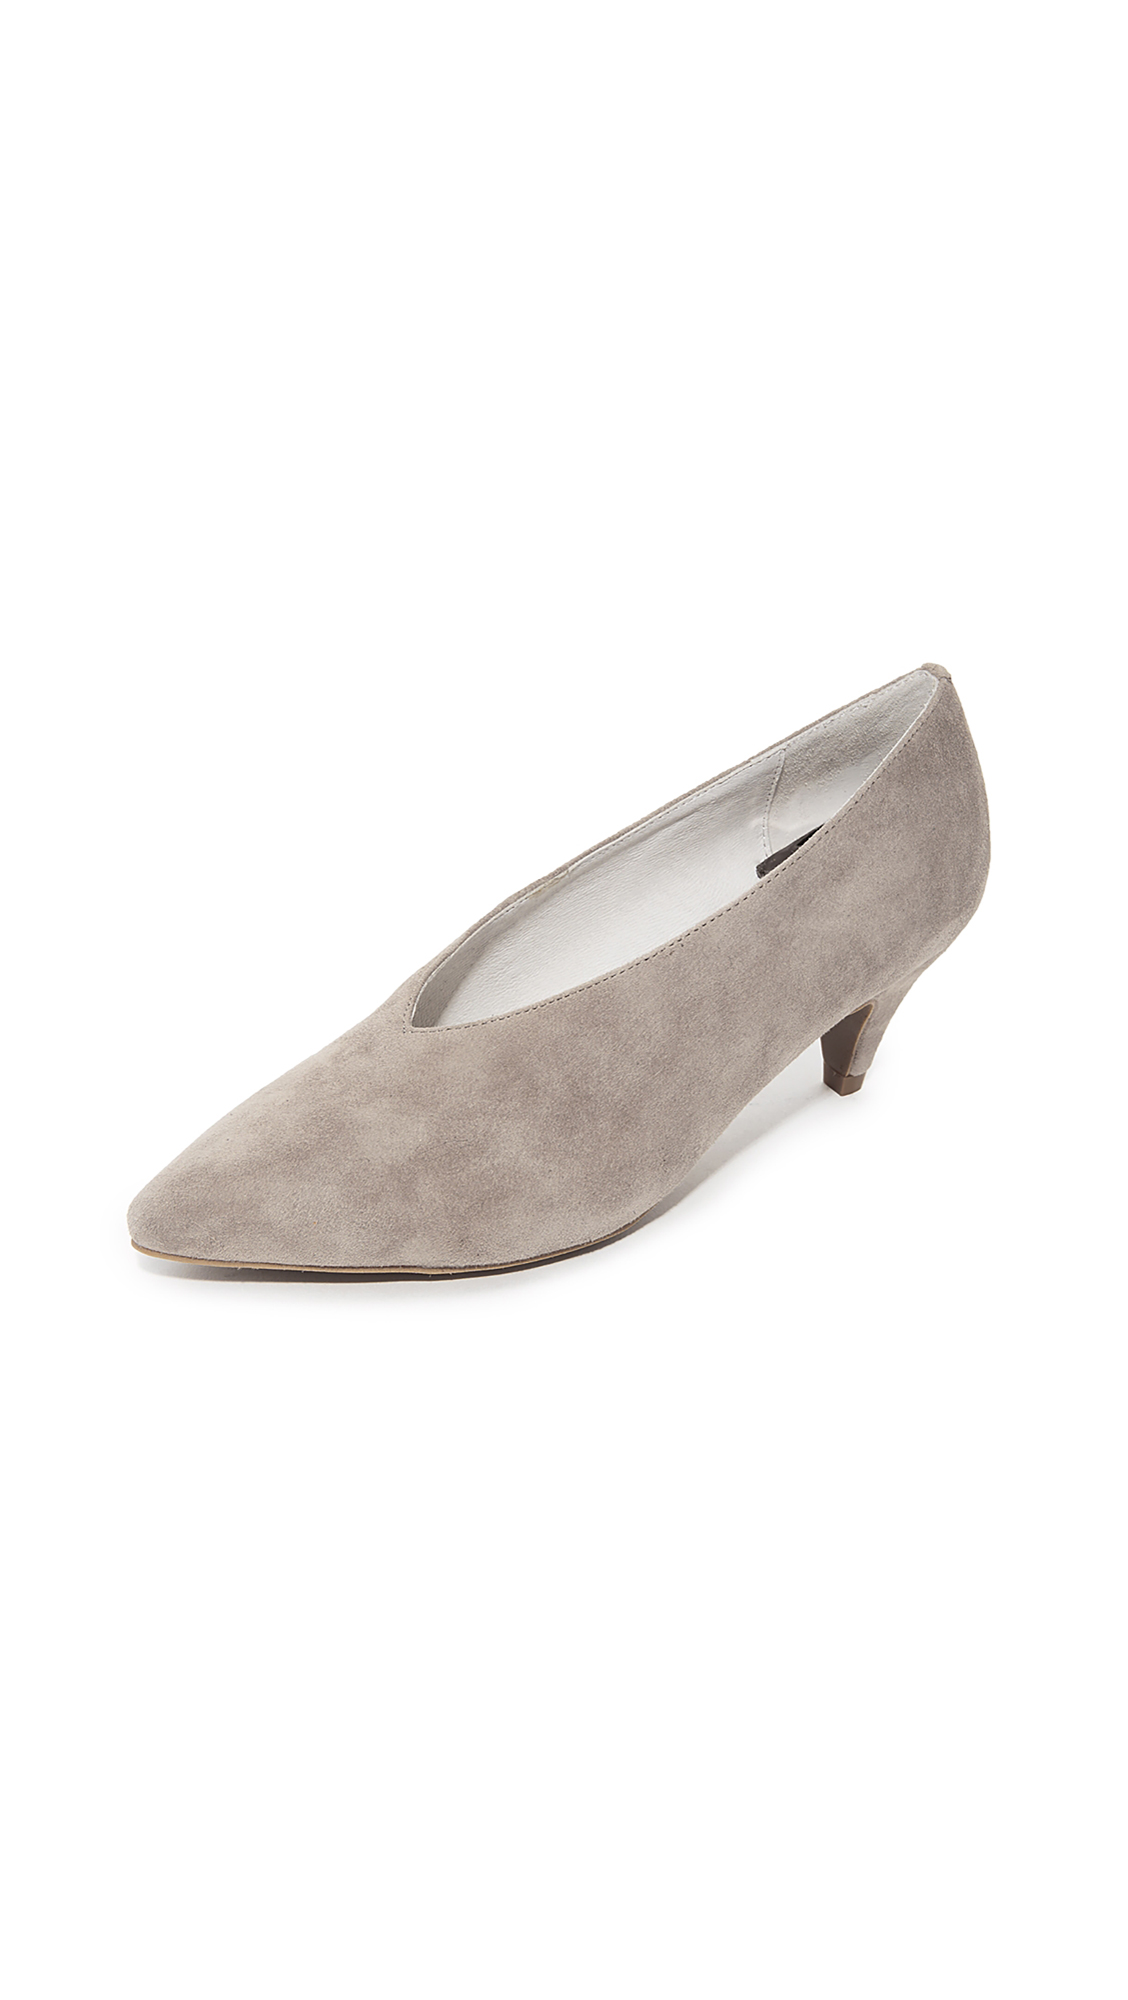 Jeffrey Campbell Carla Low Heel Pumps - Taupe